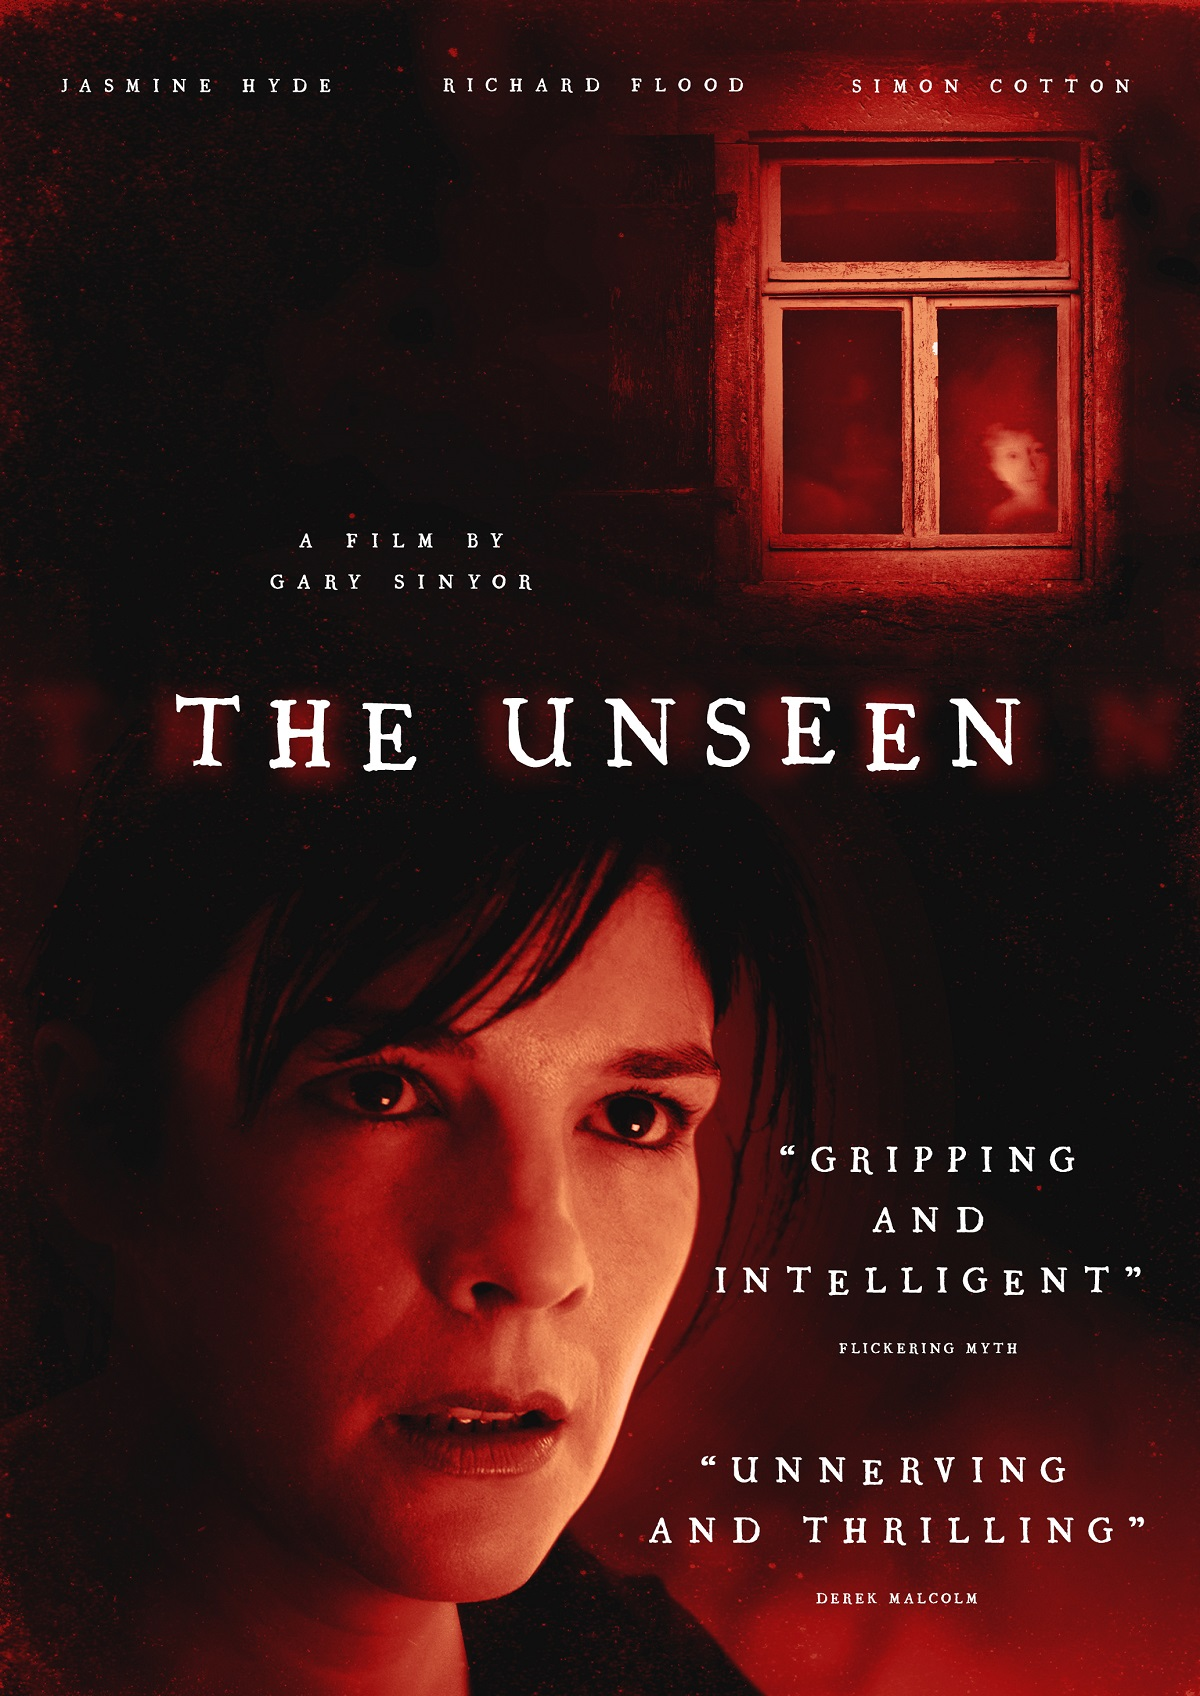 Gemma and Will are shattered when their son dies in an accident in the movie, The Unseen.